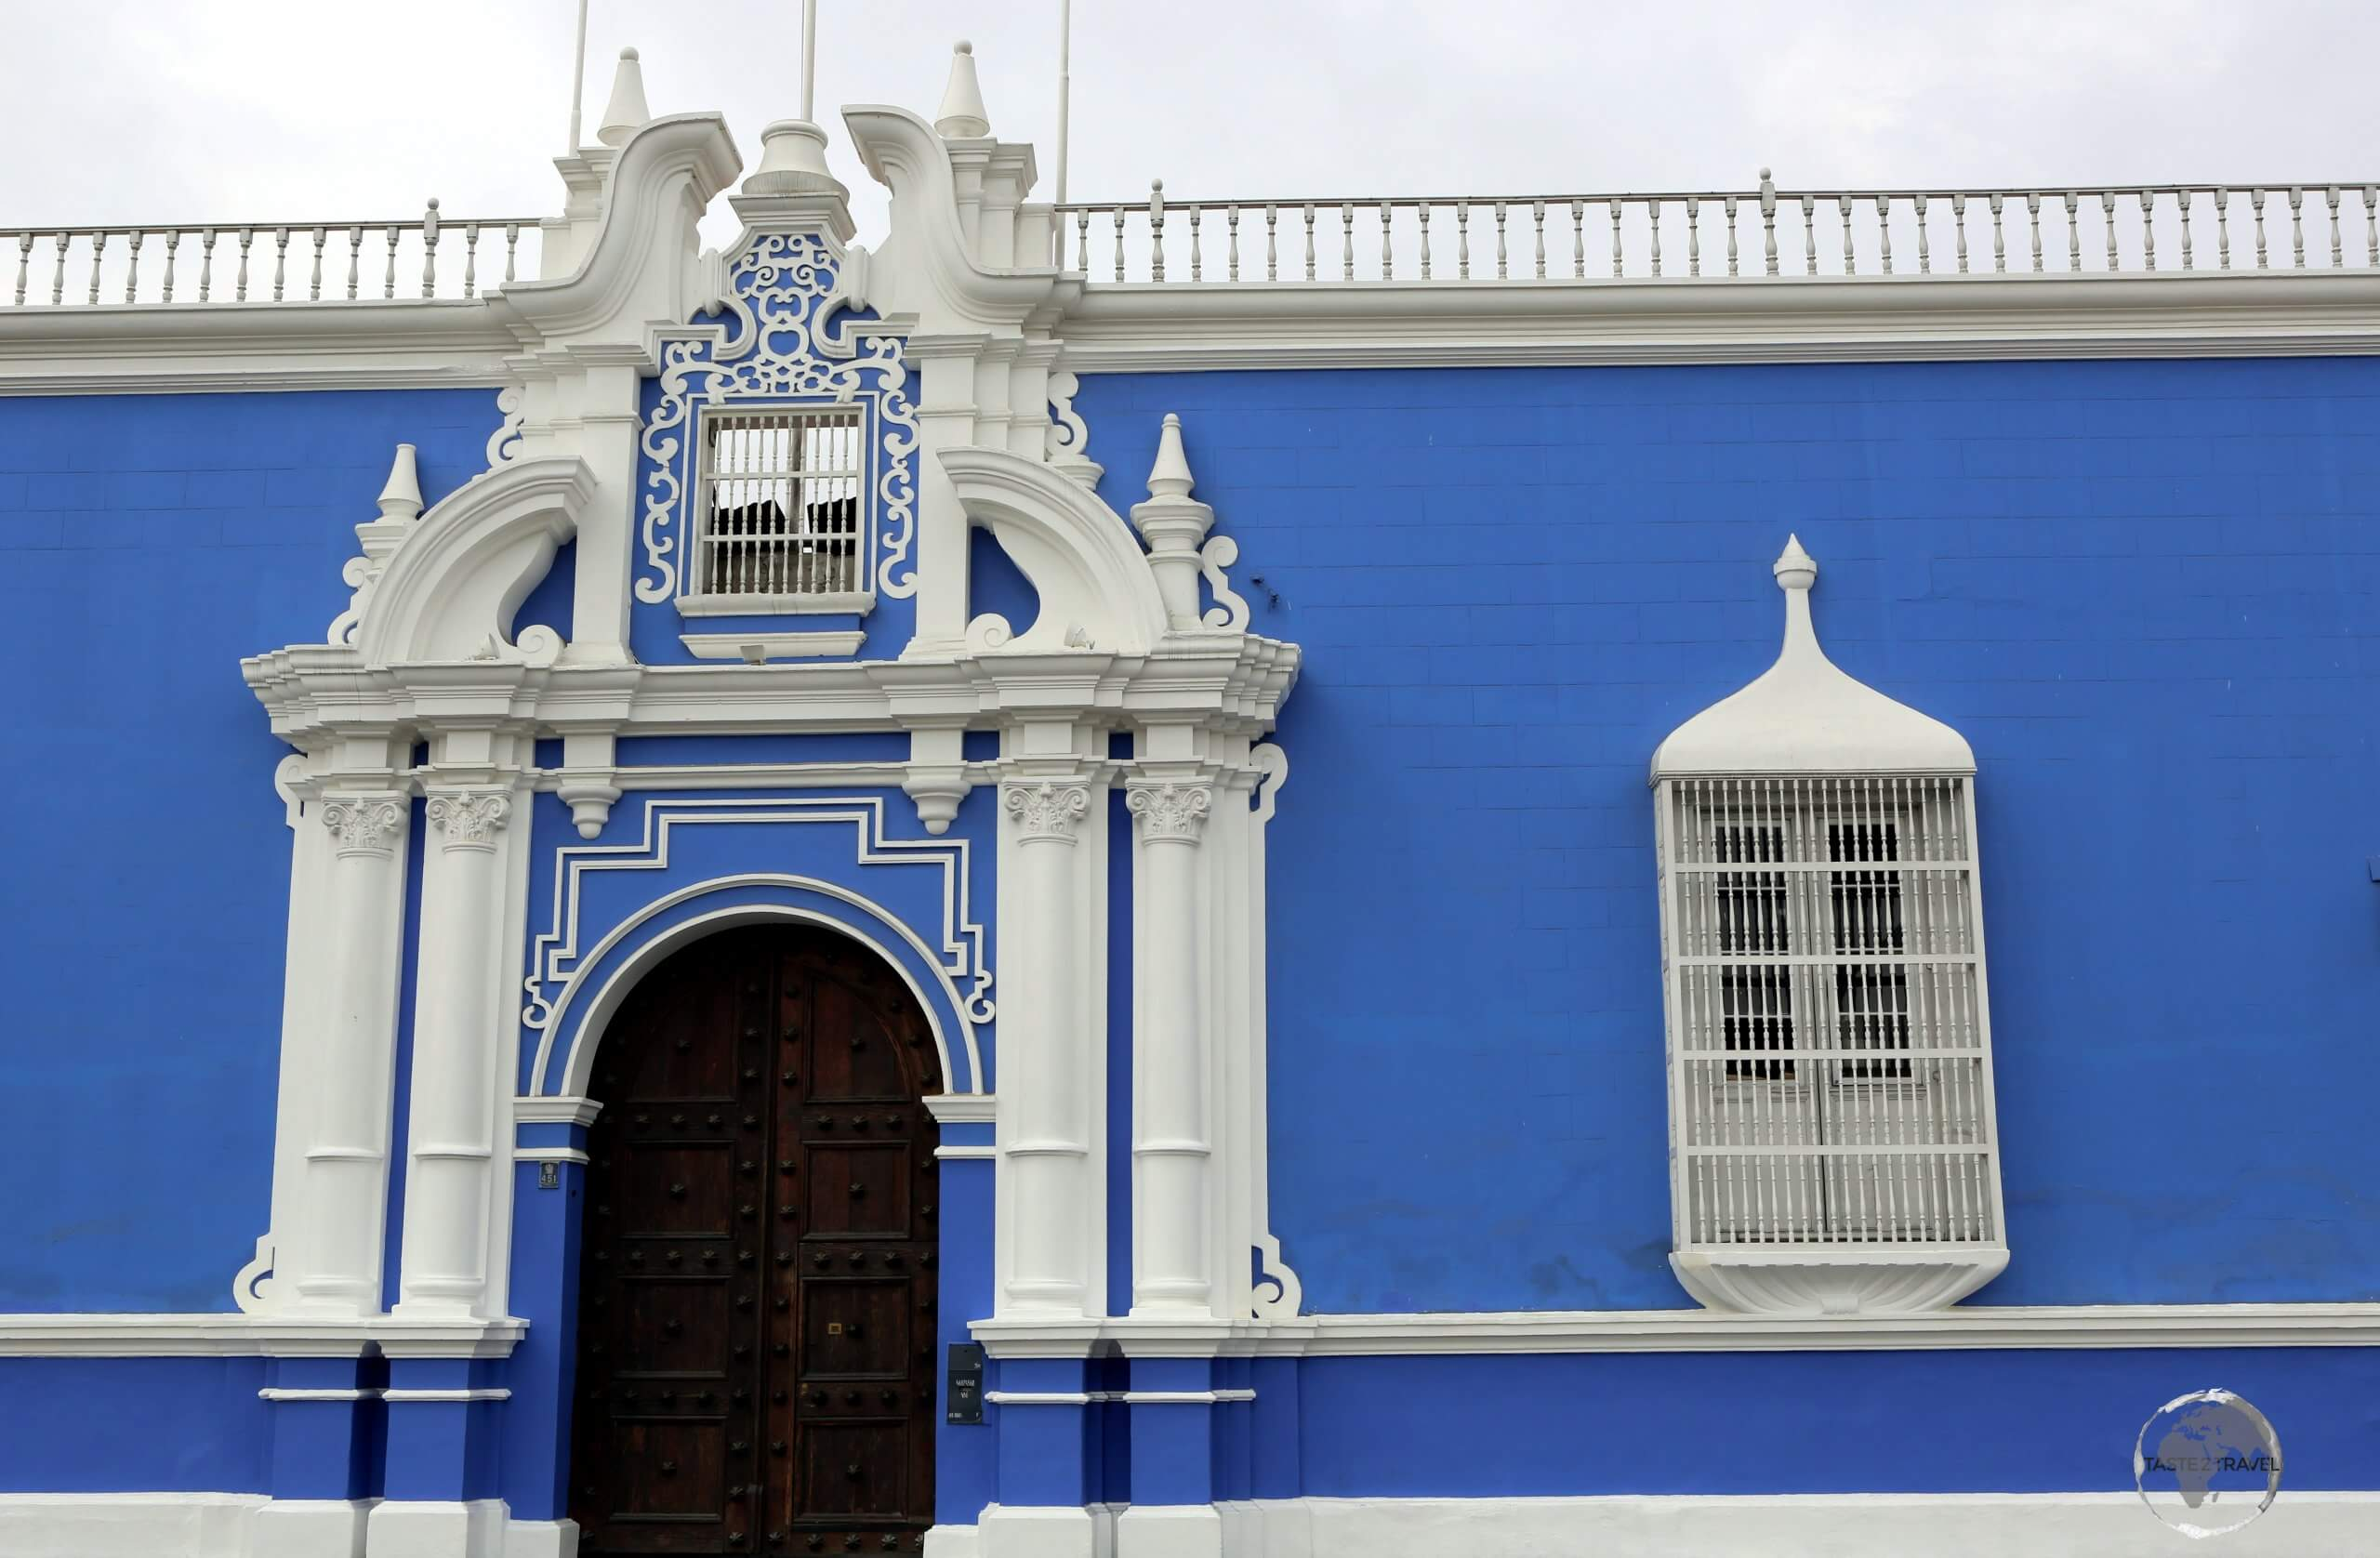 The second oldest Spanish city in Peru, Trujillo was founded in 1534 by Diego Almagro; the following year it was elevated to city status by the conquistador Francisco Pizarro.